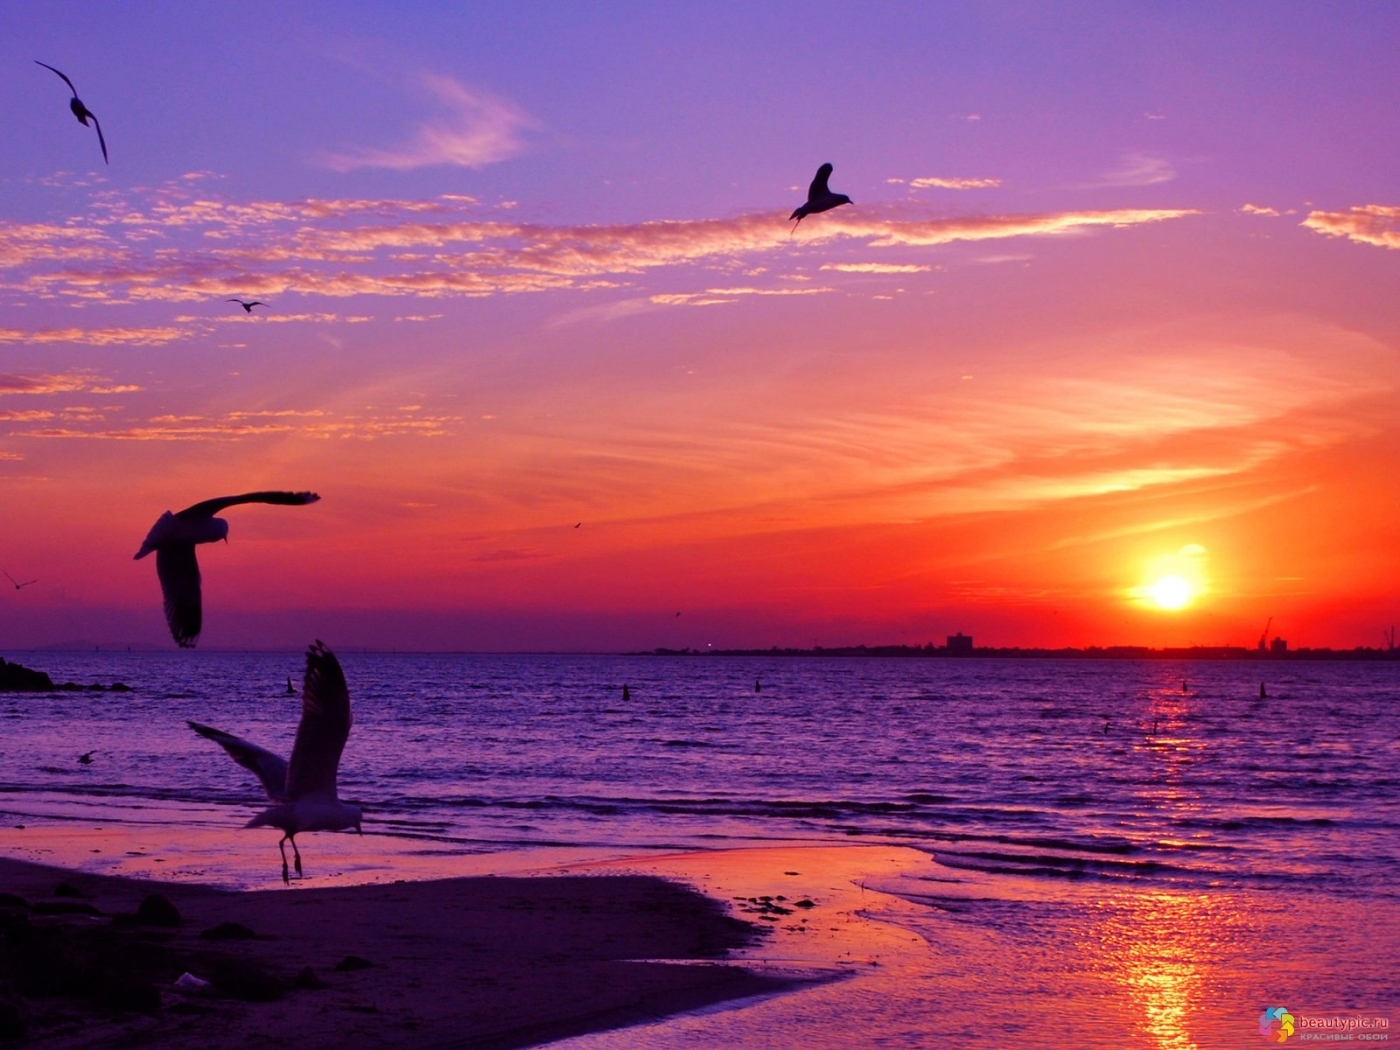 28380 download wallpaper Landscape, Sunset, Sea, Seagulls screensavers and pictures for free